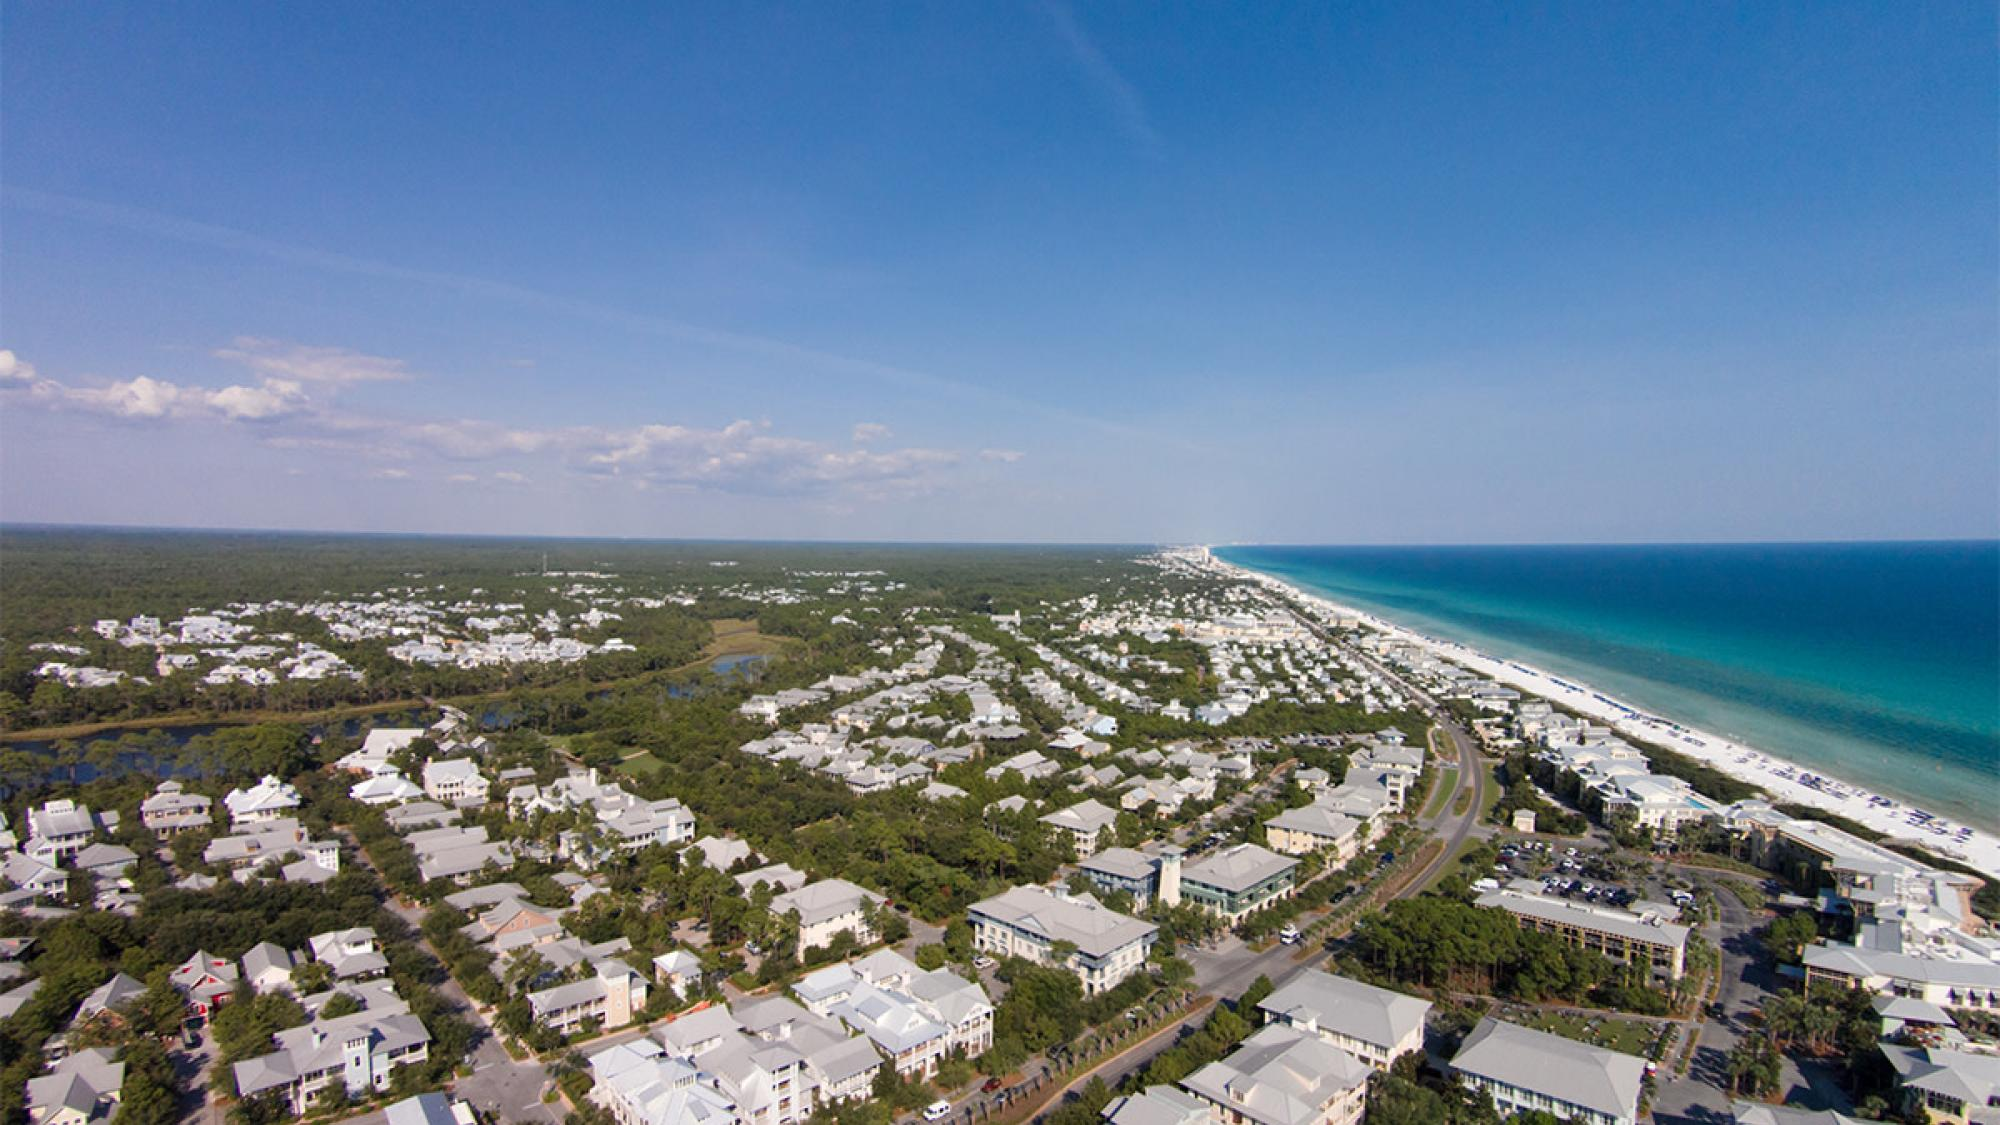 2000x1125 30a Vacation Rentals By 360 Blue Visit South Walton